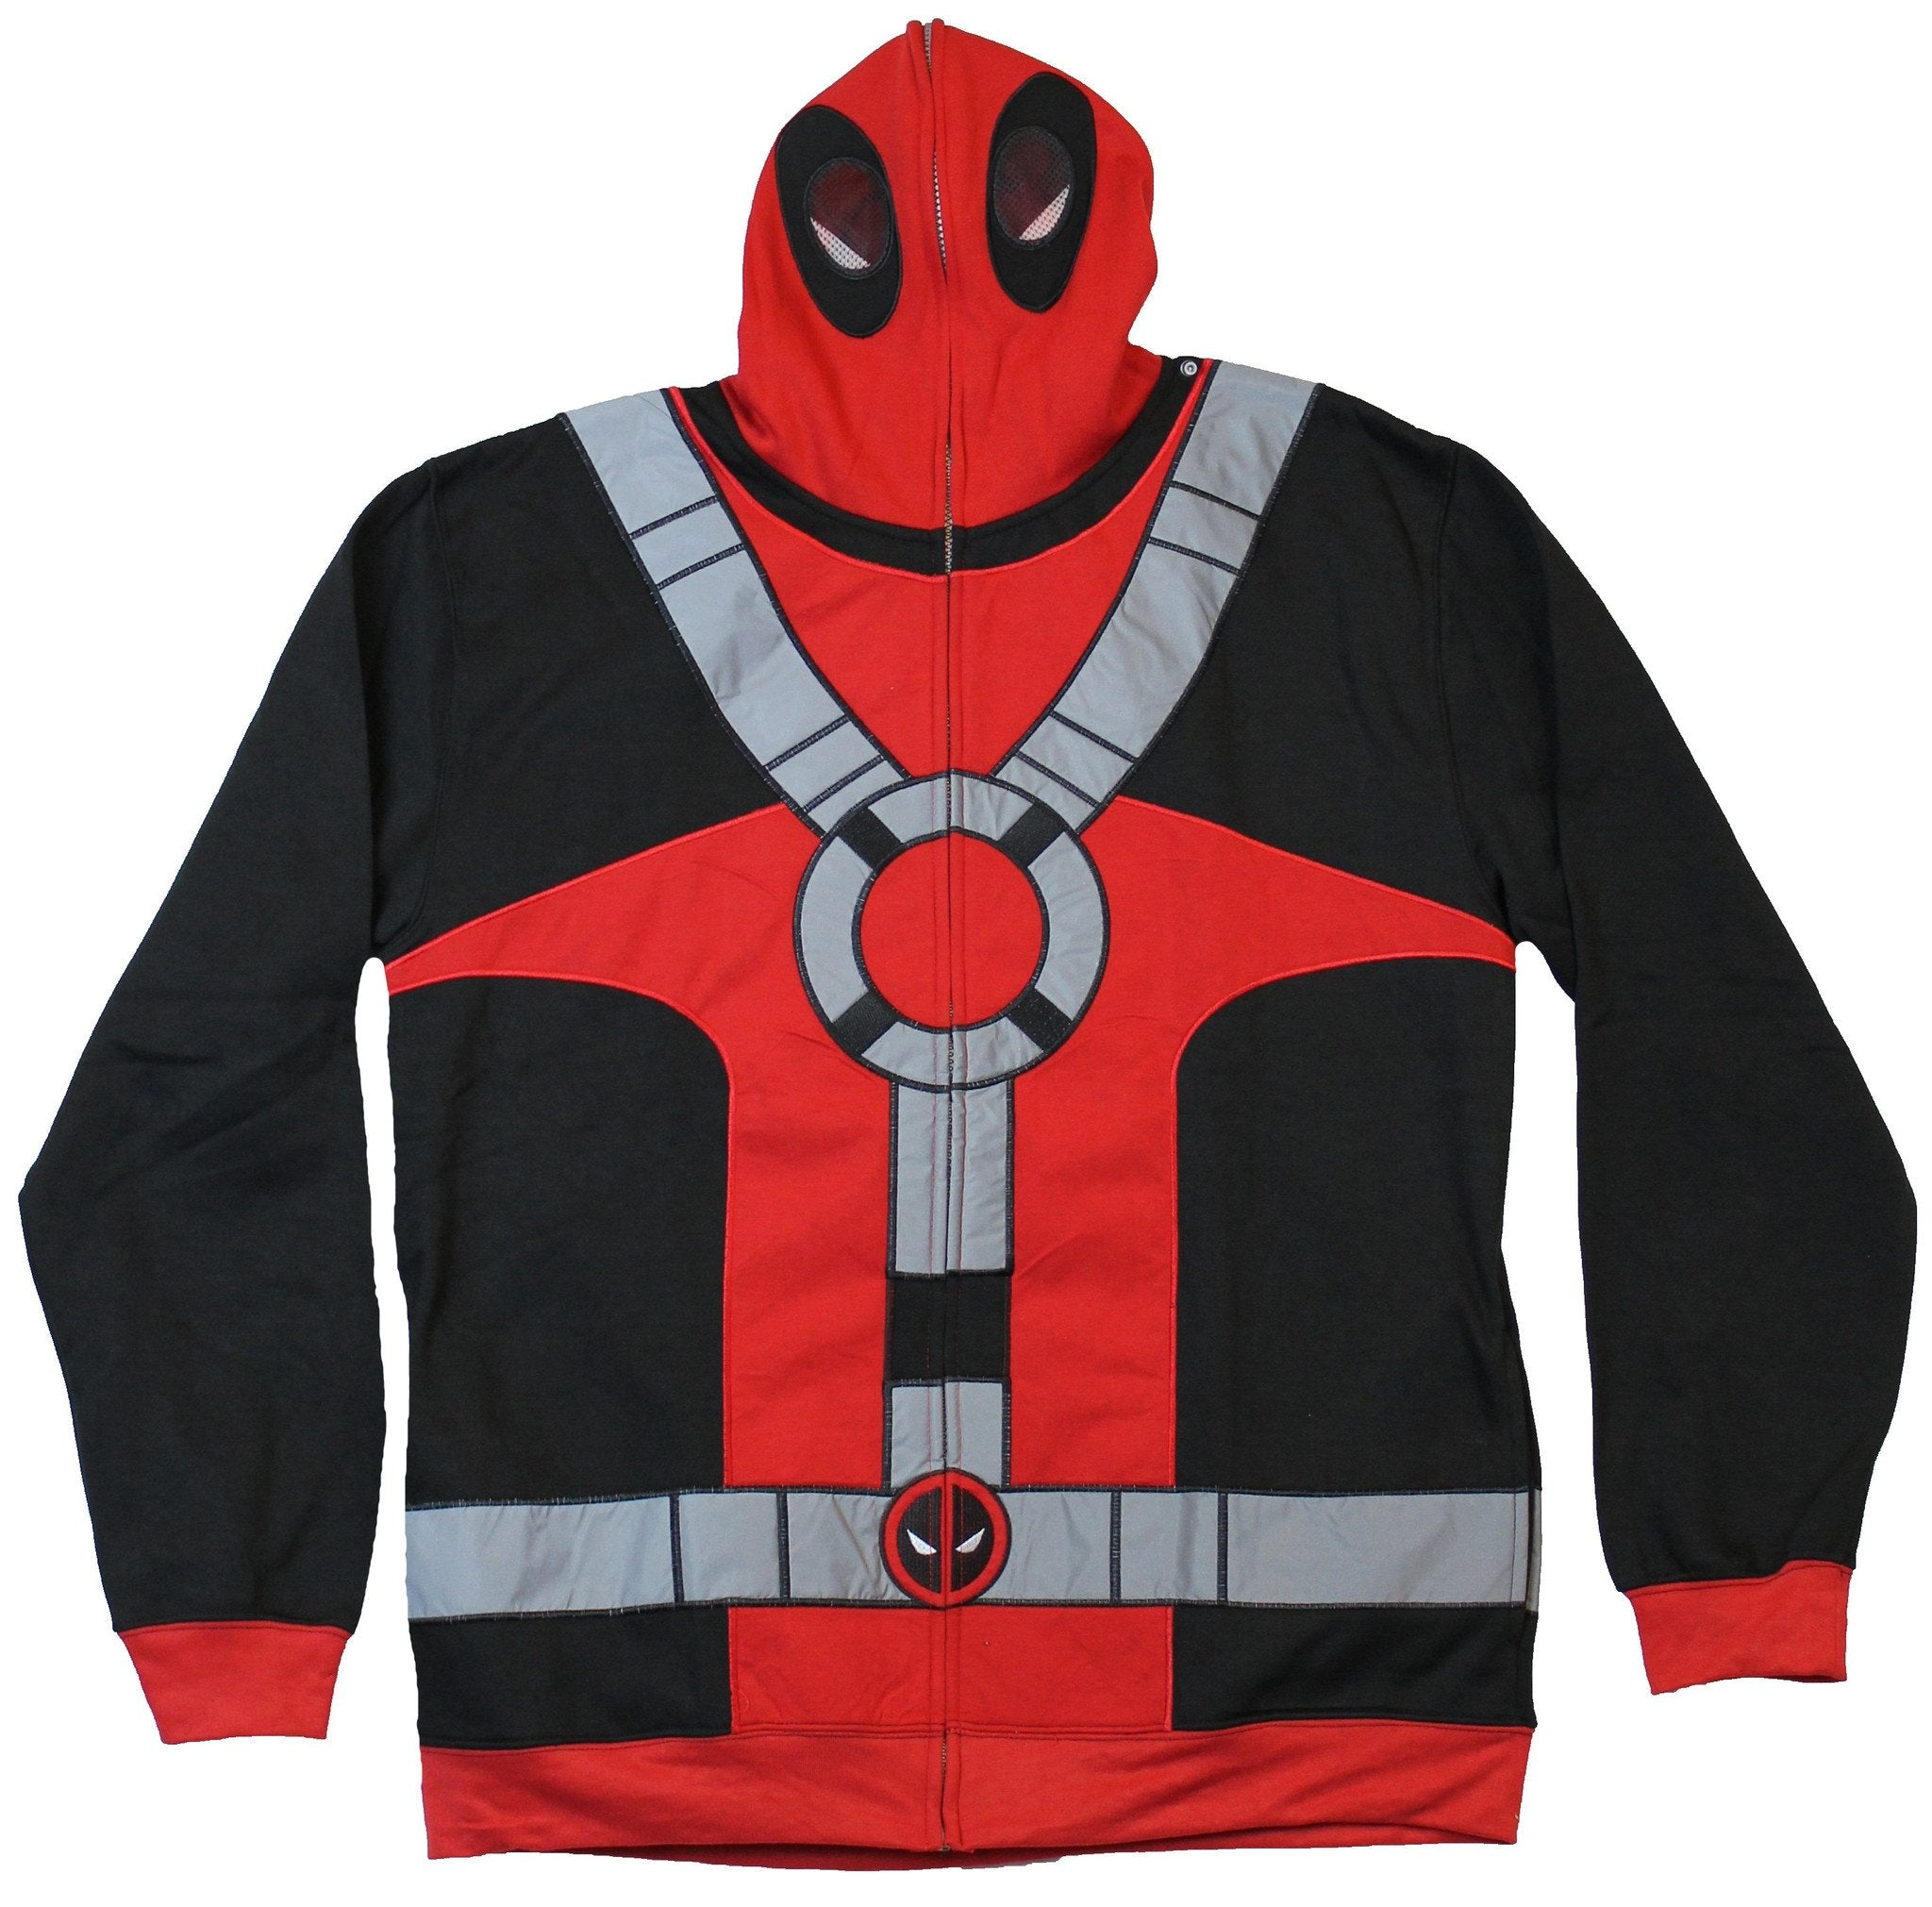 Deadpool (Marvel Comics) Hoodie Sweatshirt - Costume Style Silver Strip Image